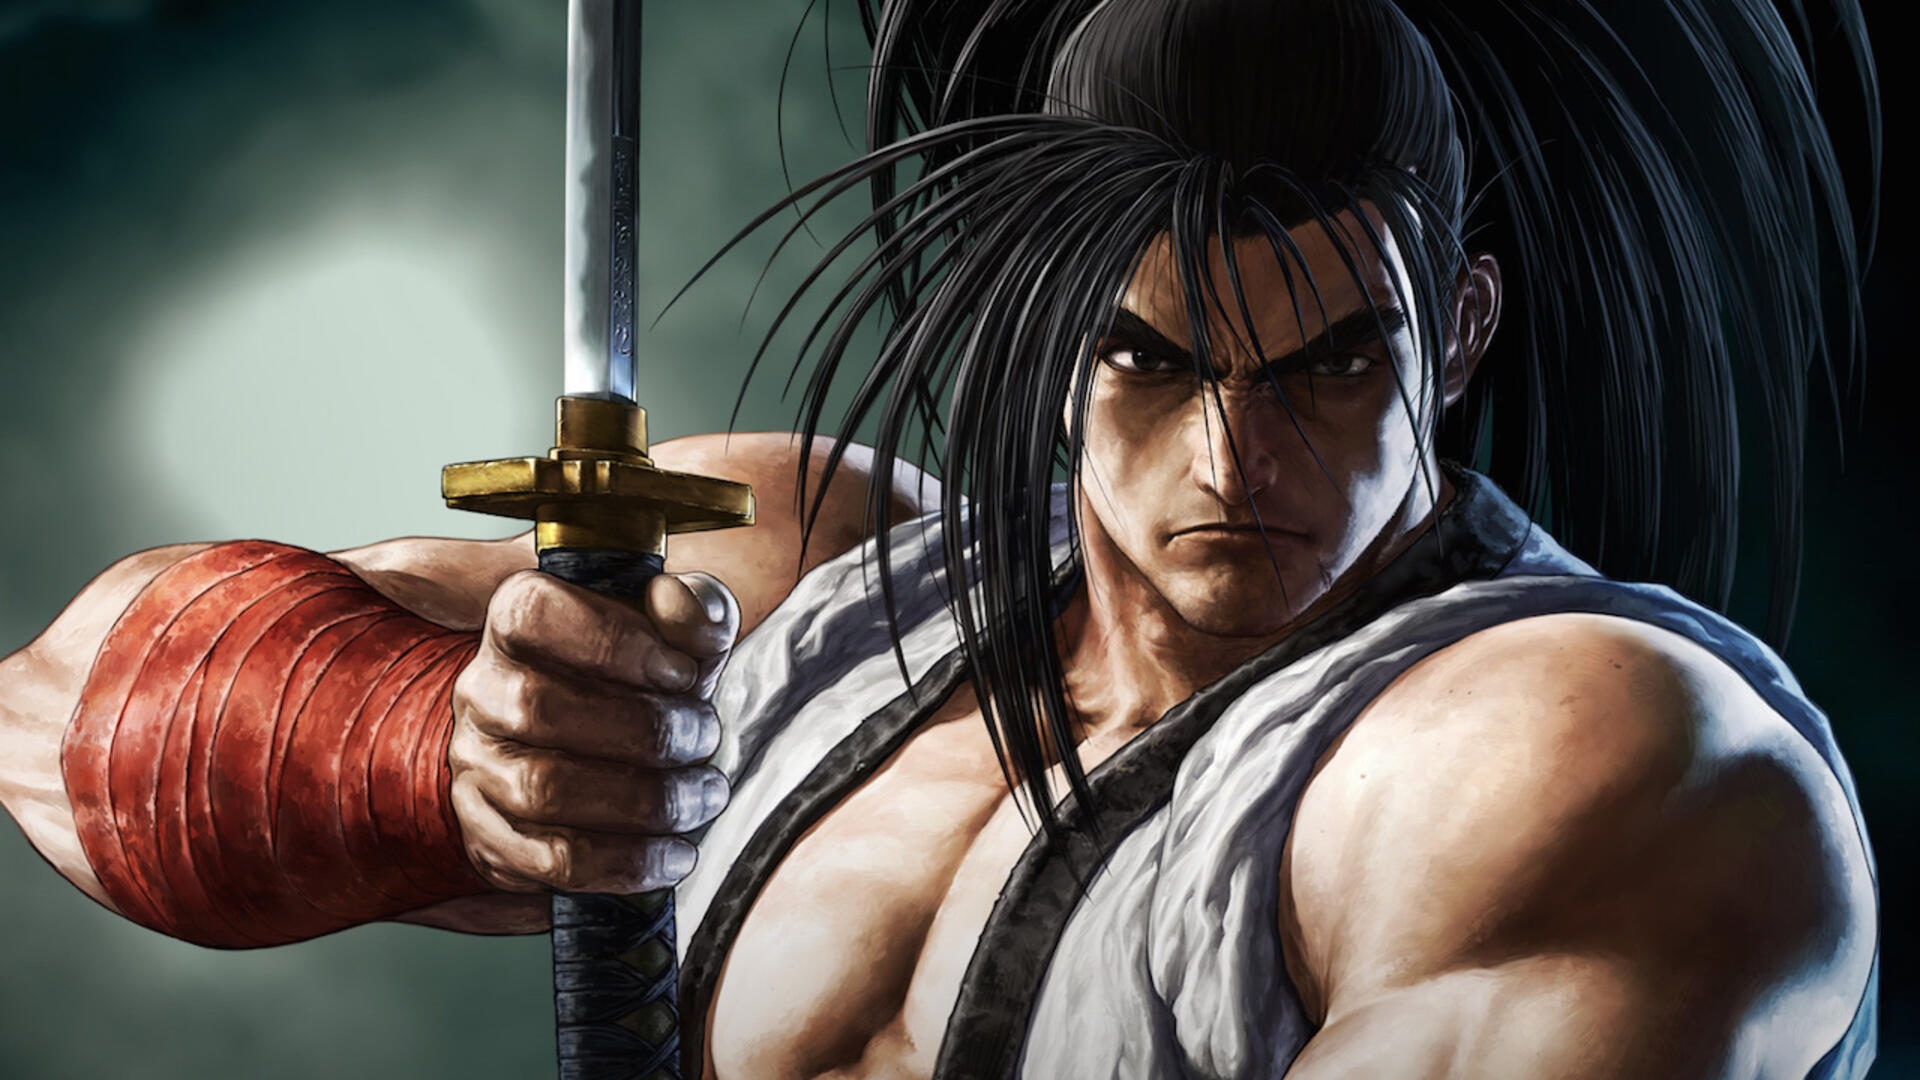 Our Best Guesses at Super Smash Bros. Ultimate's Rumored SNK Character, and Why It Might be Haohmaru